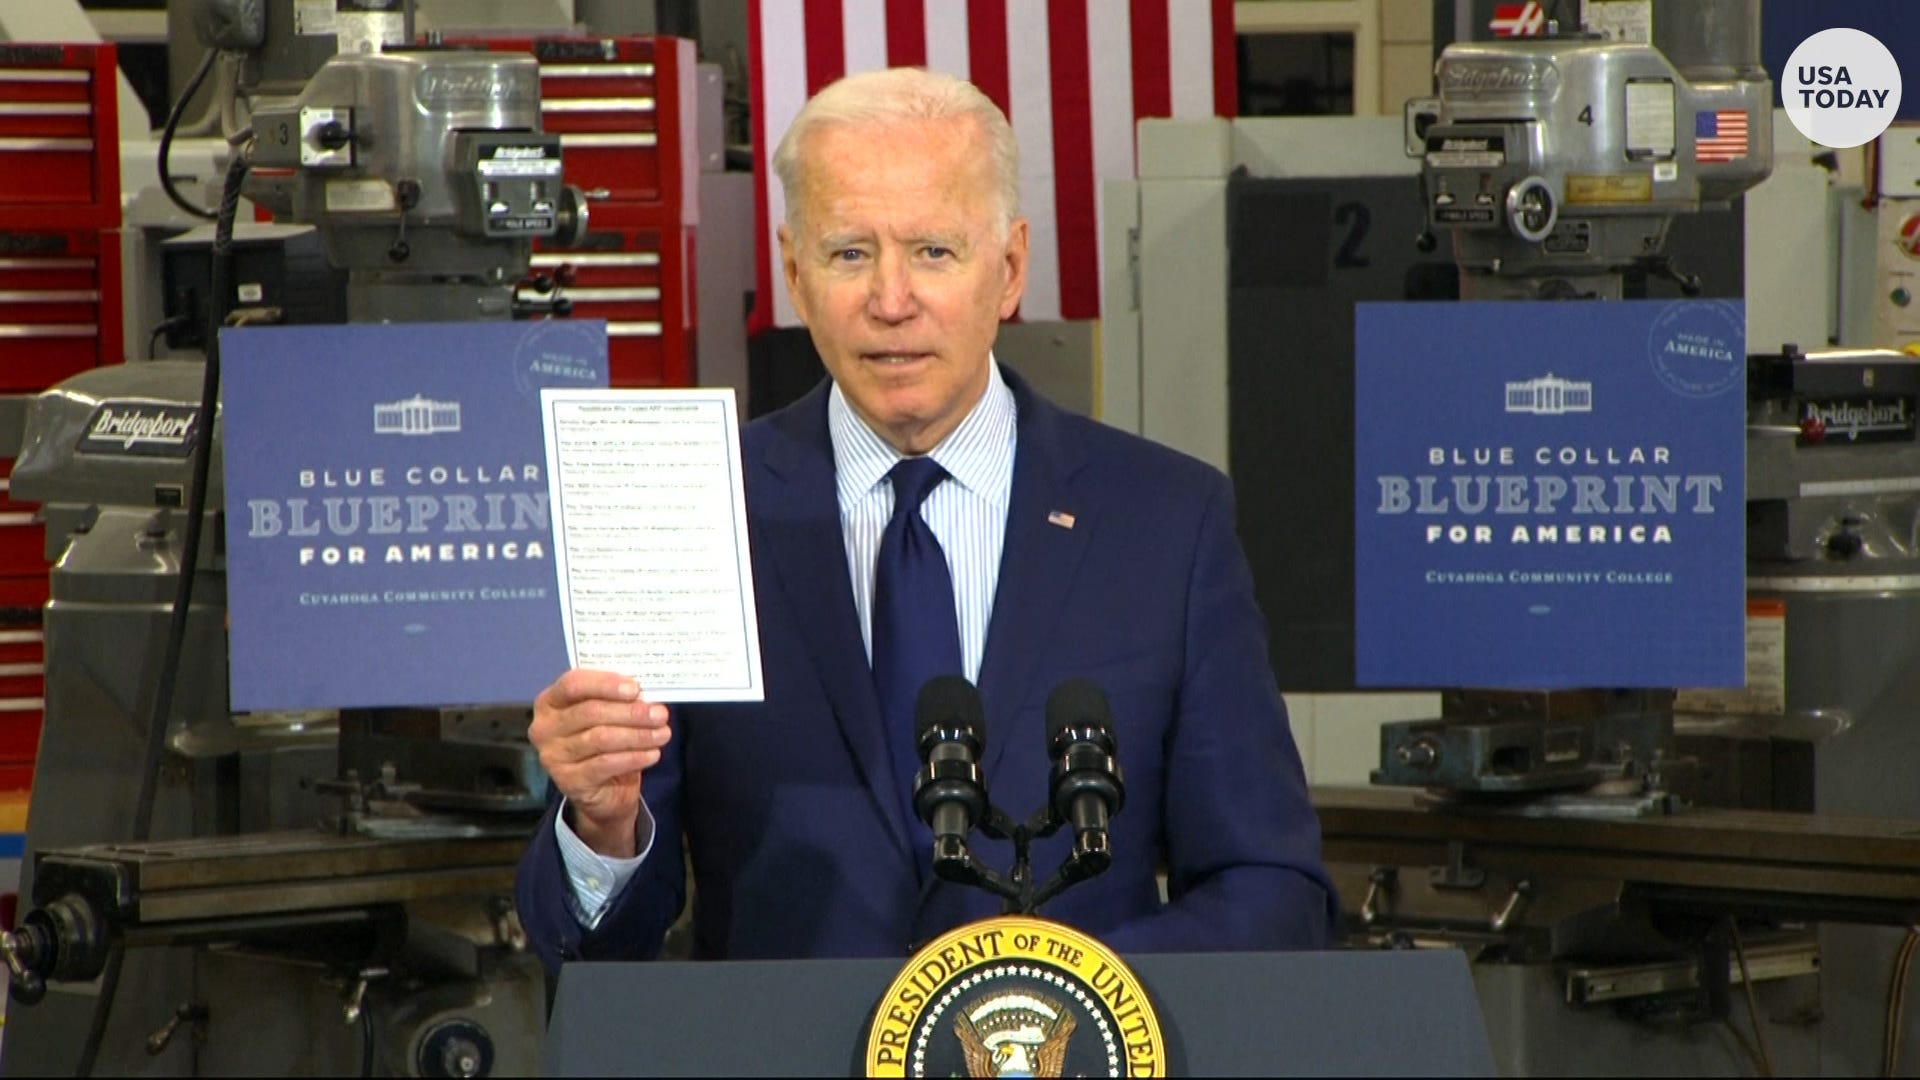 Joe Biden in a suit standing in front of a computer: President Joe Biden discussed his the economy, jobs and infrastructure during remarks in Cleveland.